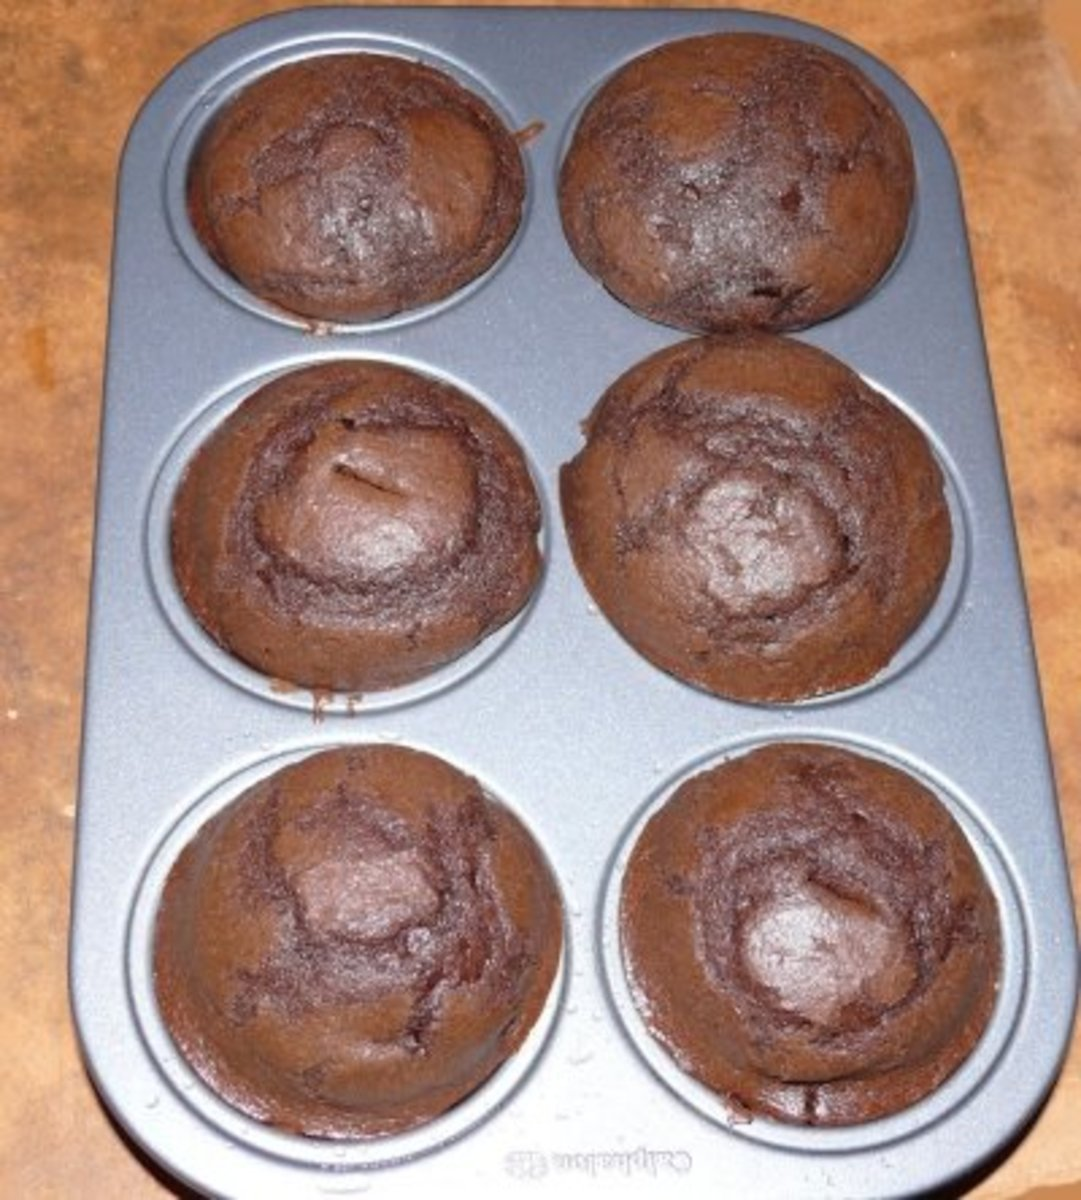 Chocolate cupcakes, all done and ready to cool and frost!